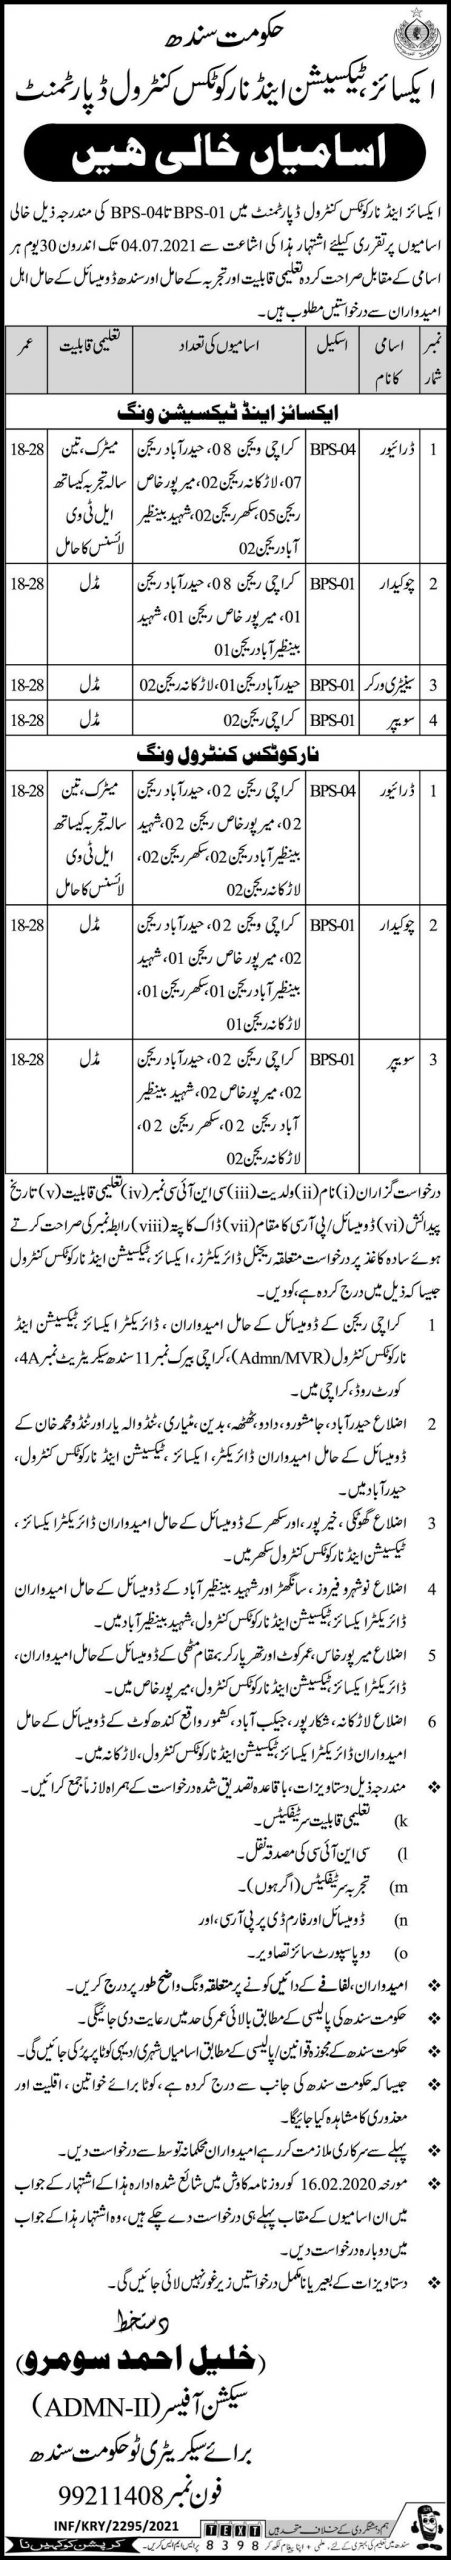 ANF jobs 2021 | Excise and Taxation Anti Narcotics Department jobs 2021